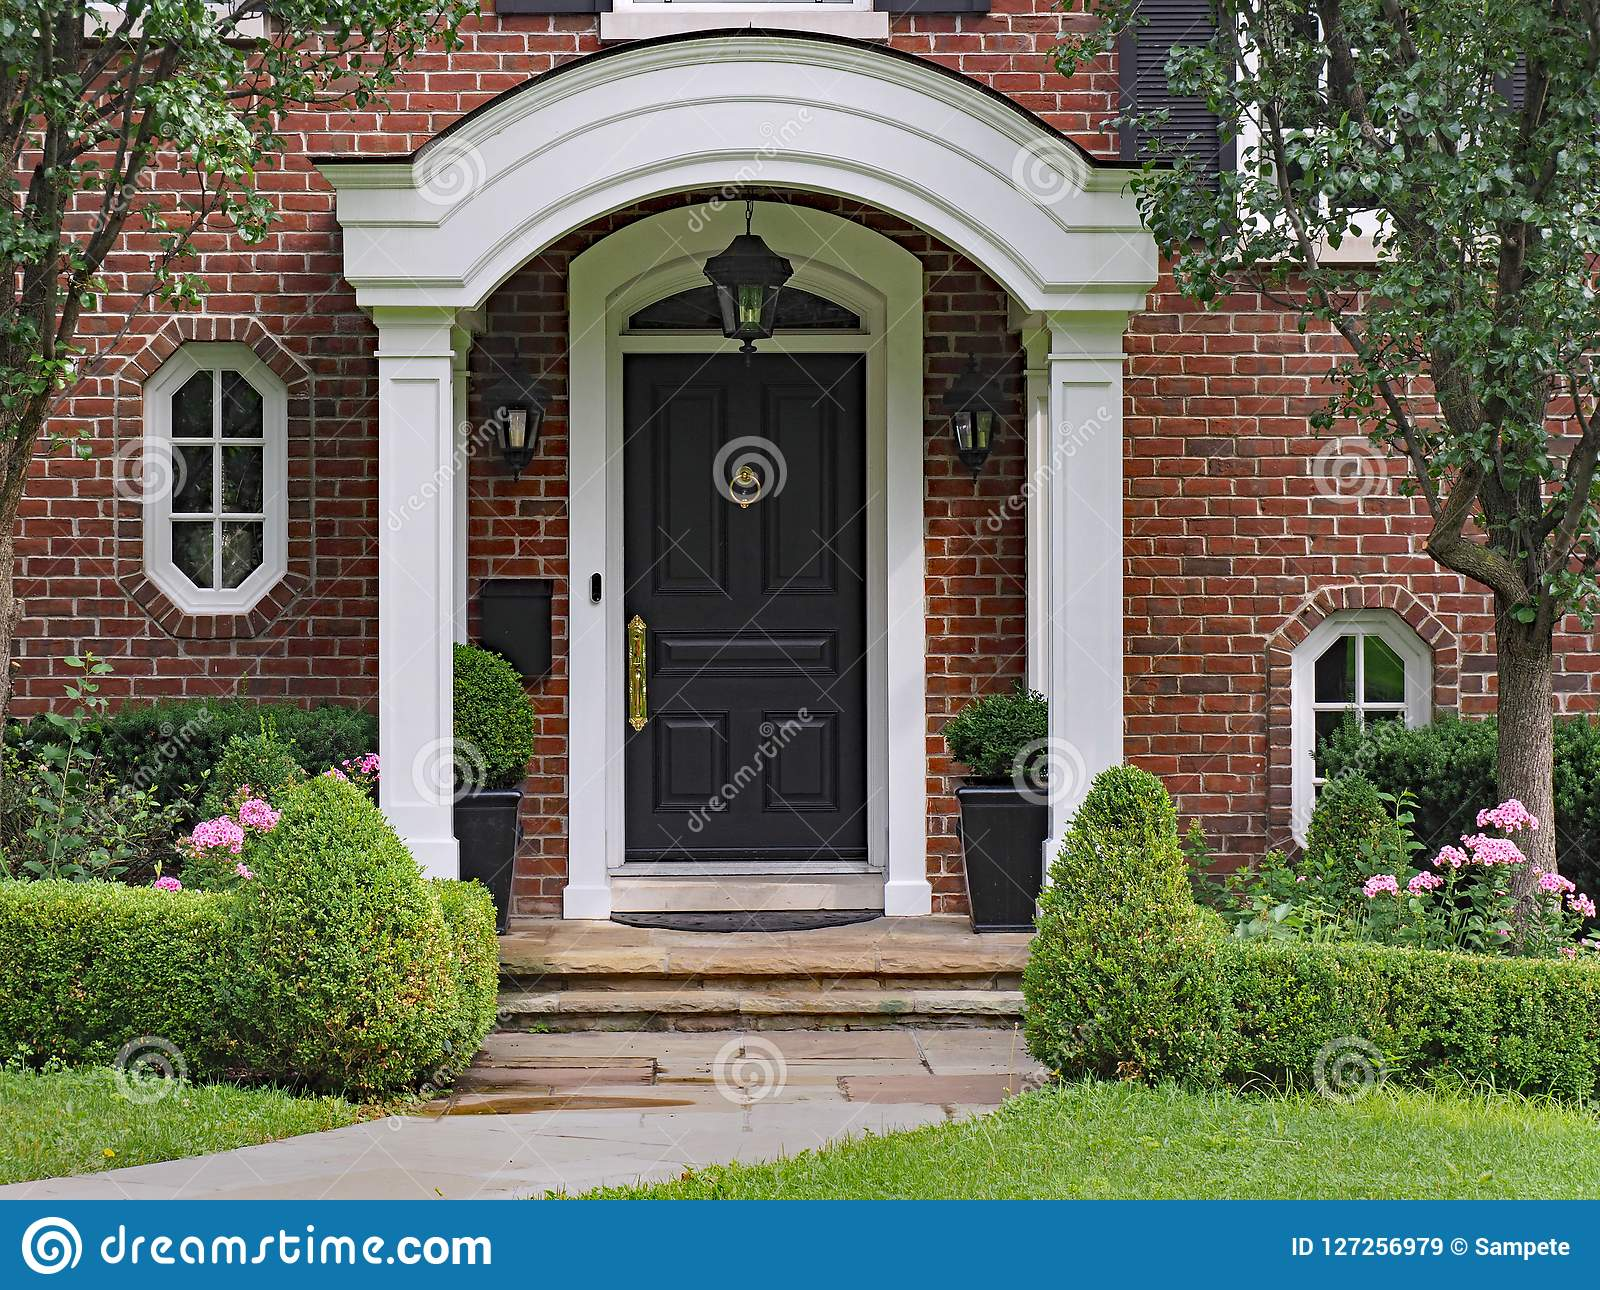 Front Door With Curved Portico Roof Stock Image Image Of Home